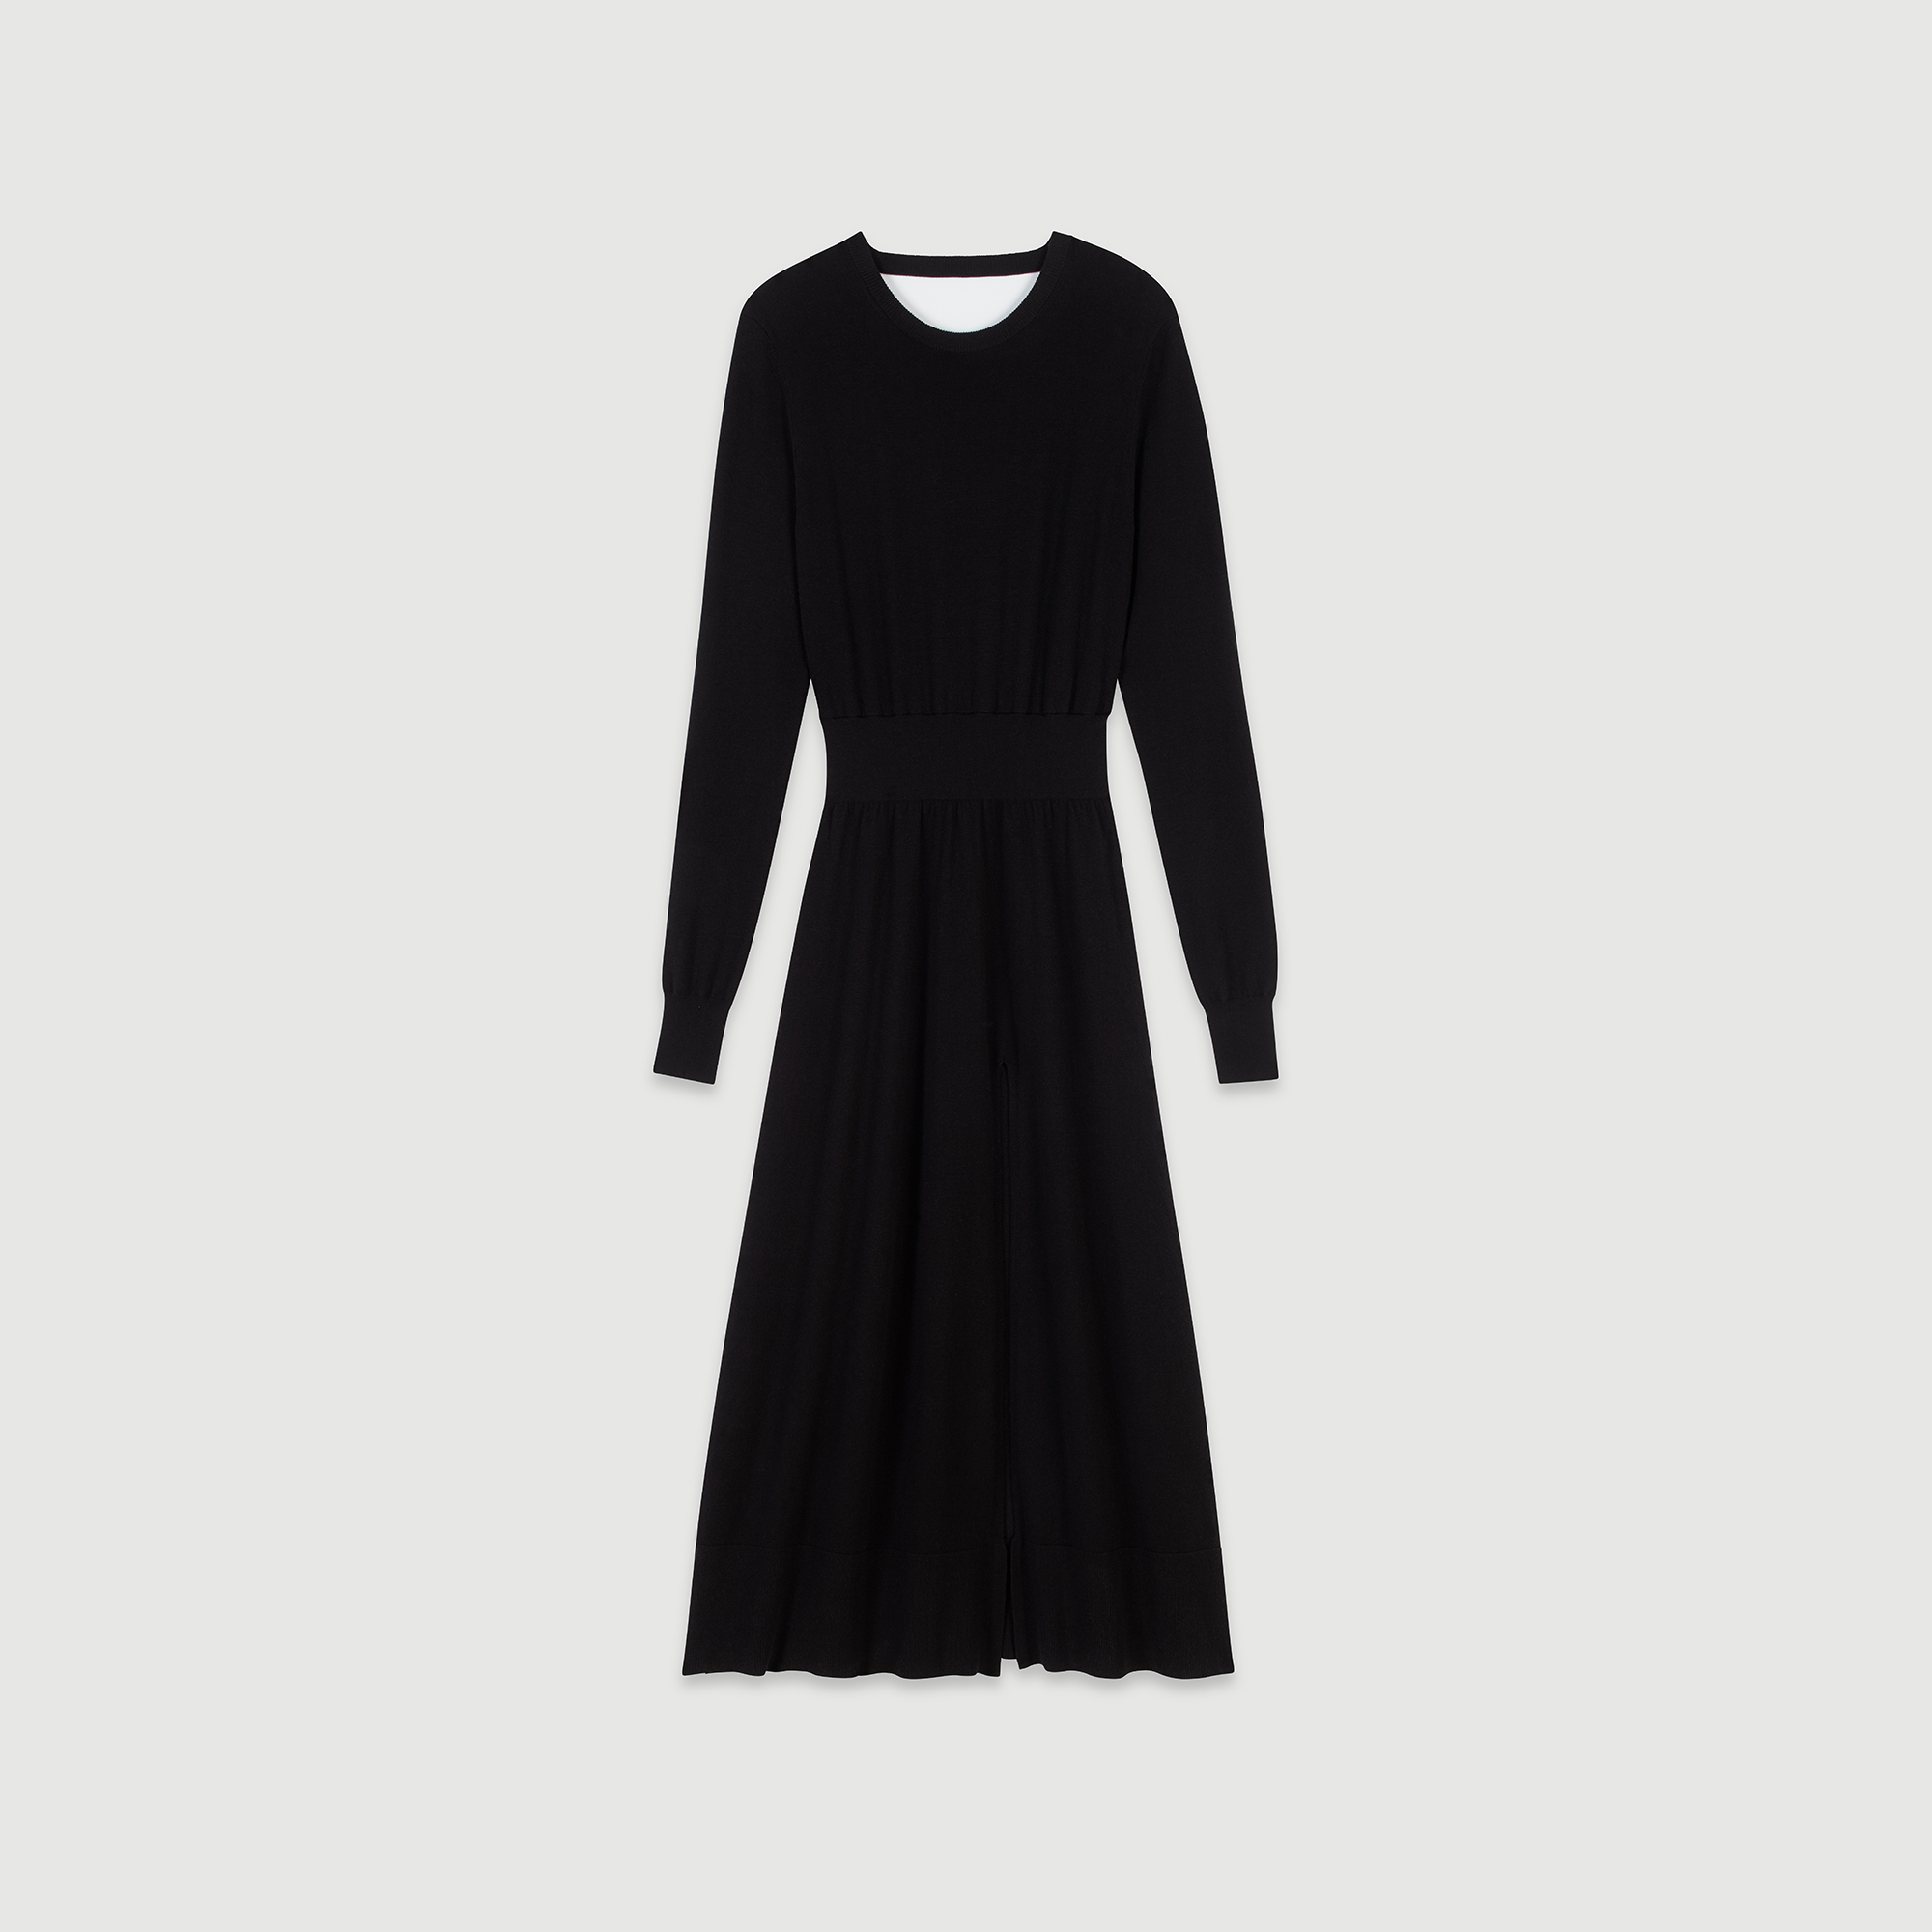 Split And Reversible Knit Dress - Black